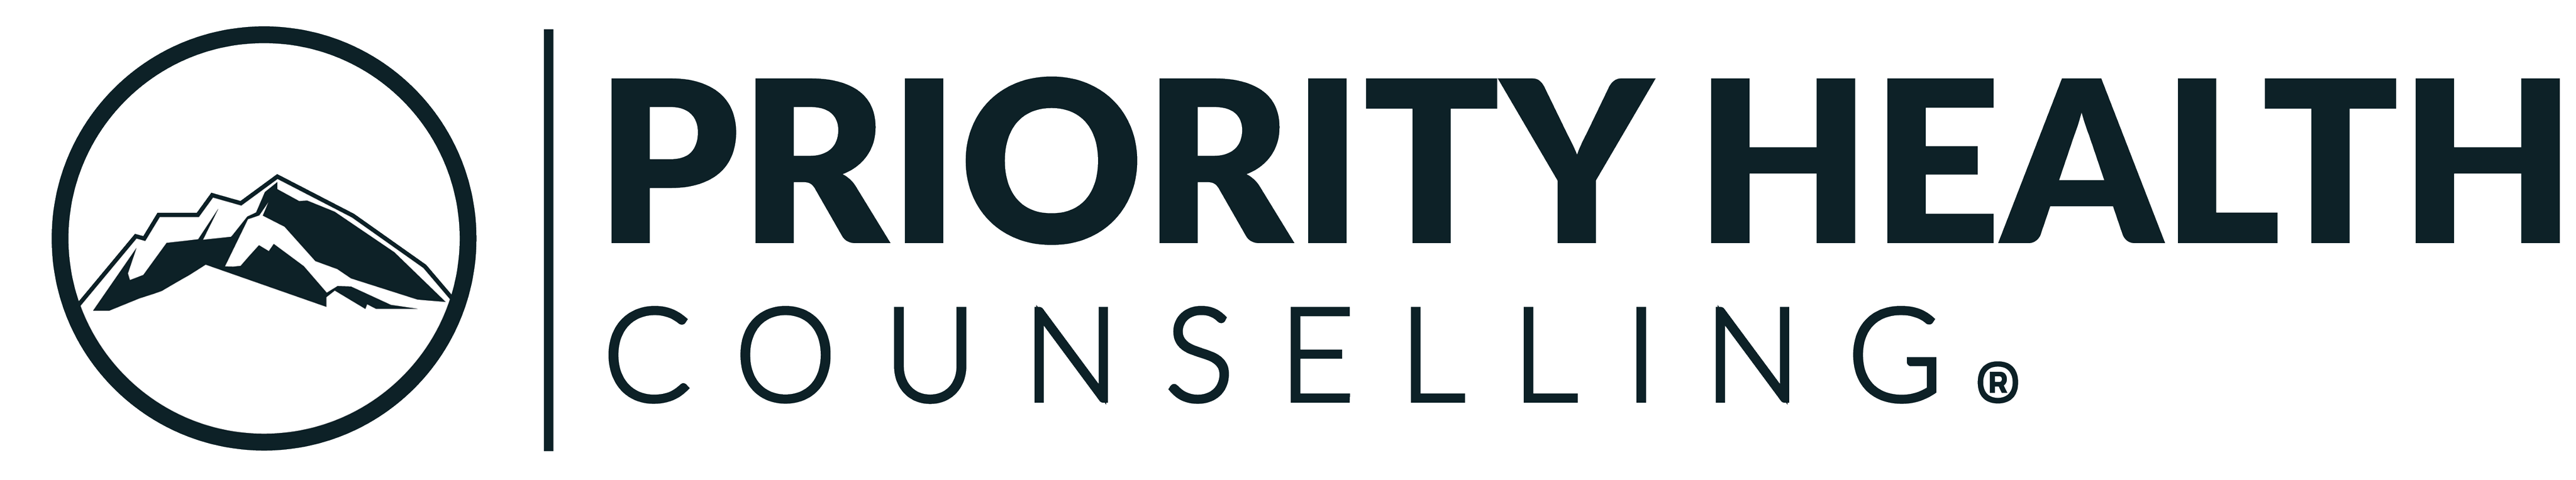 Priority Health Counselling Inc.